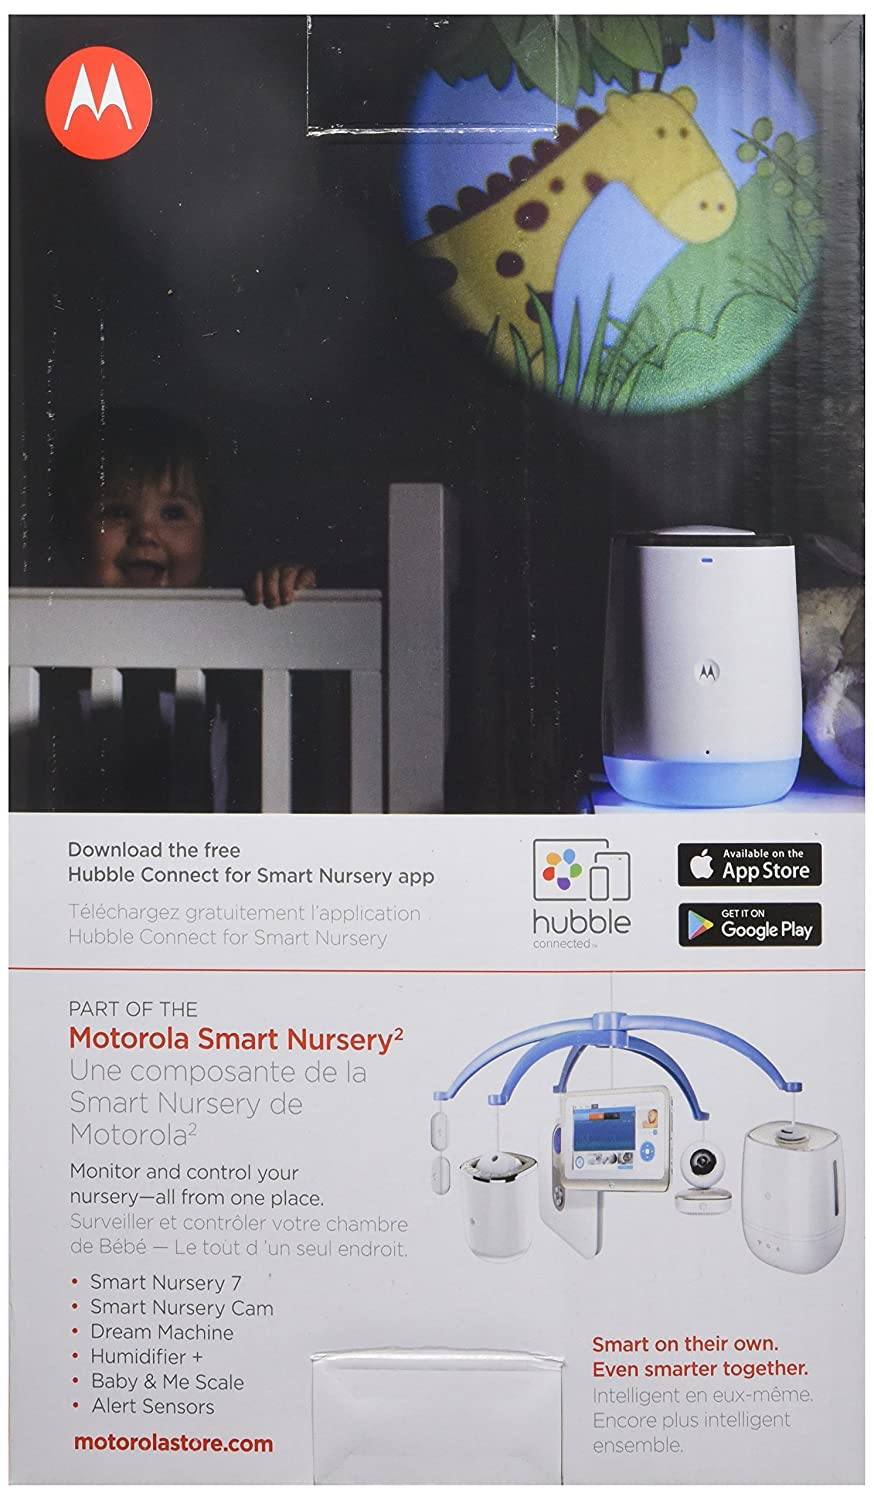 Motorola Smart Nursery Dream Machine Connected Sound and Light Projector with Audio Monitoring